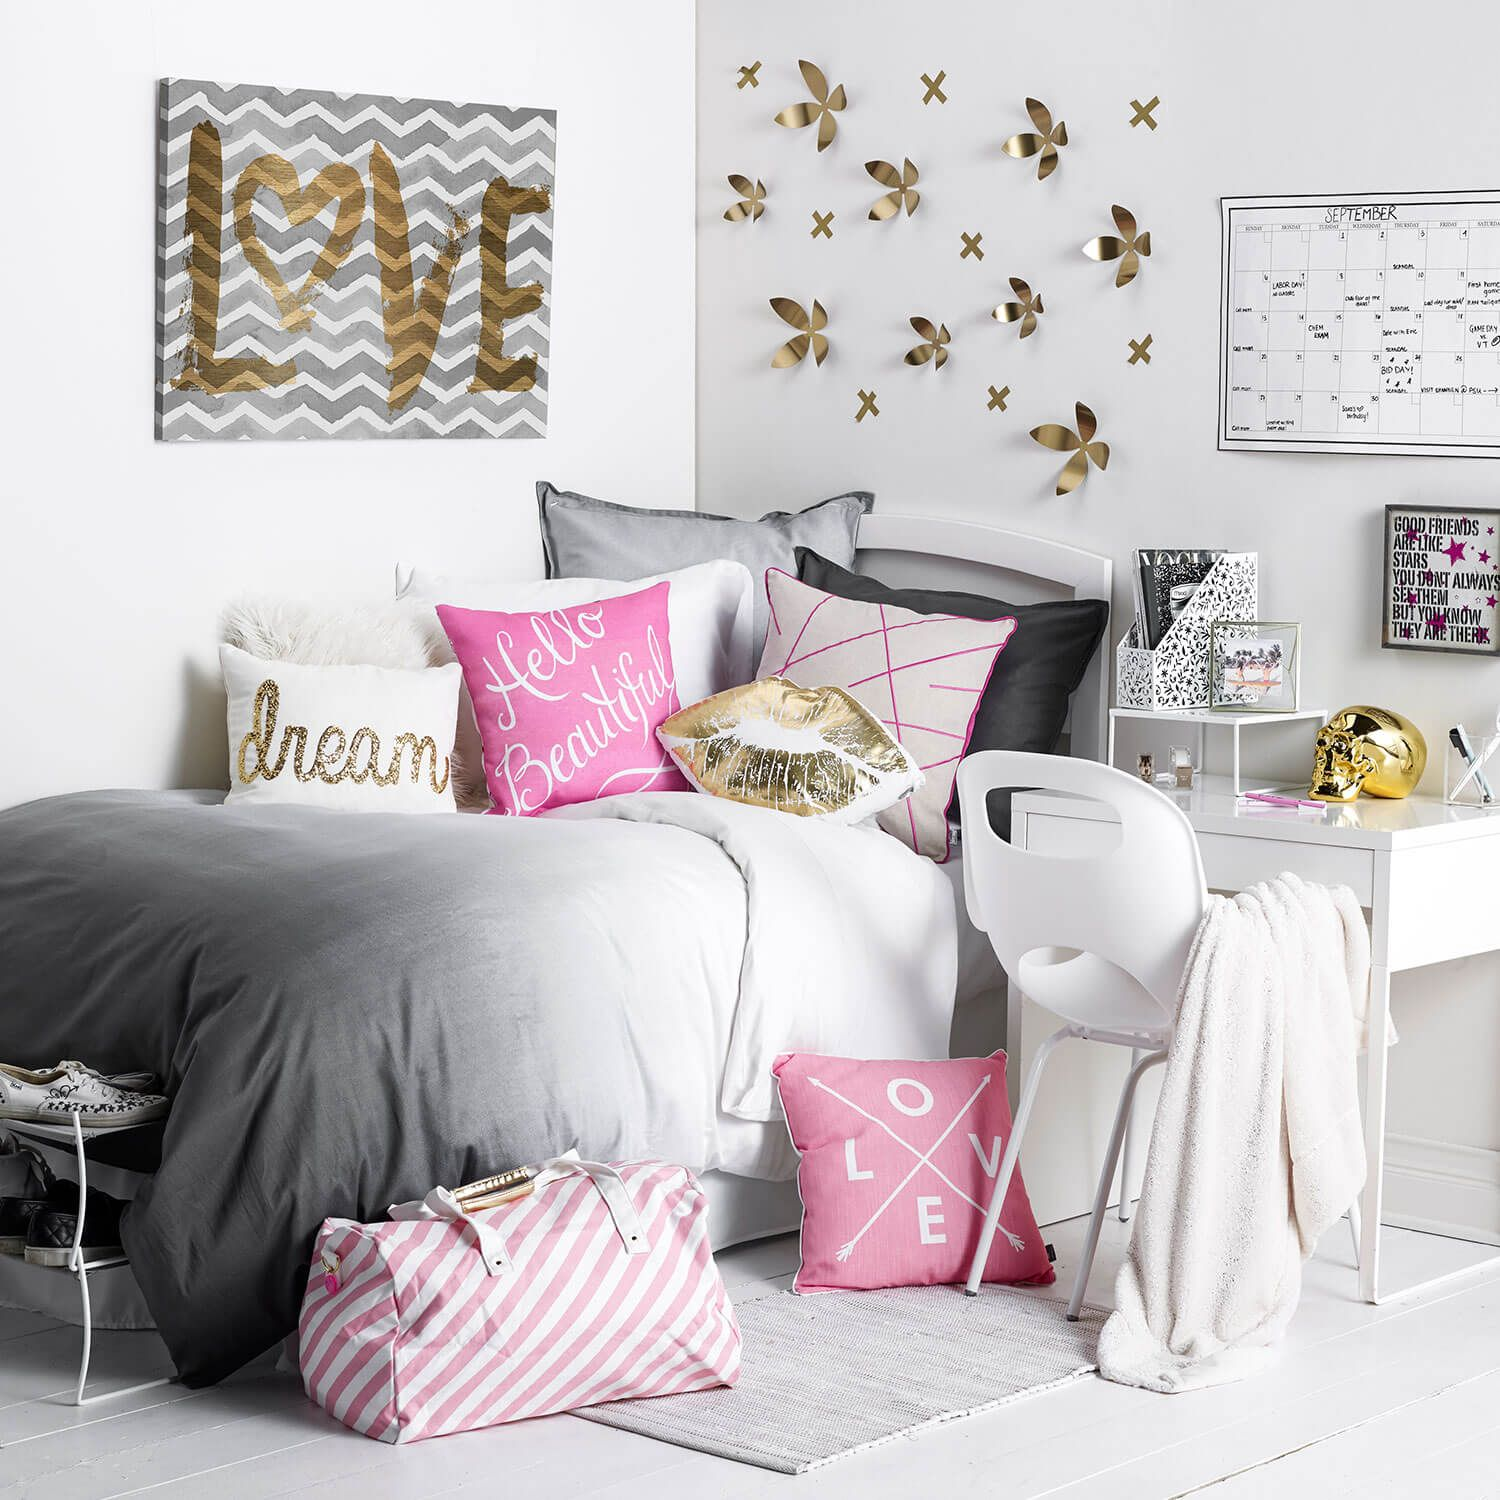 Girly boss room available on dorm bedding for Girly bedroom ideas